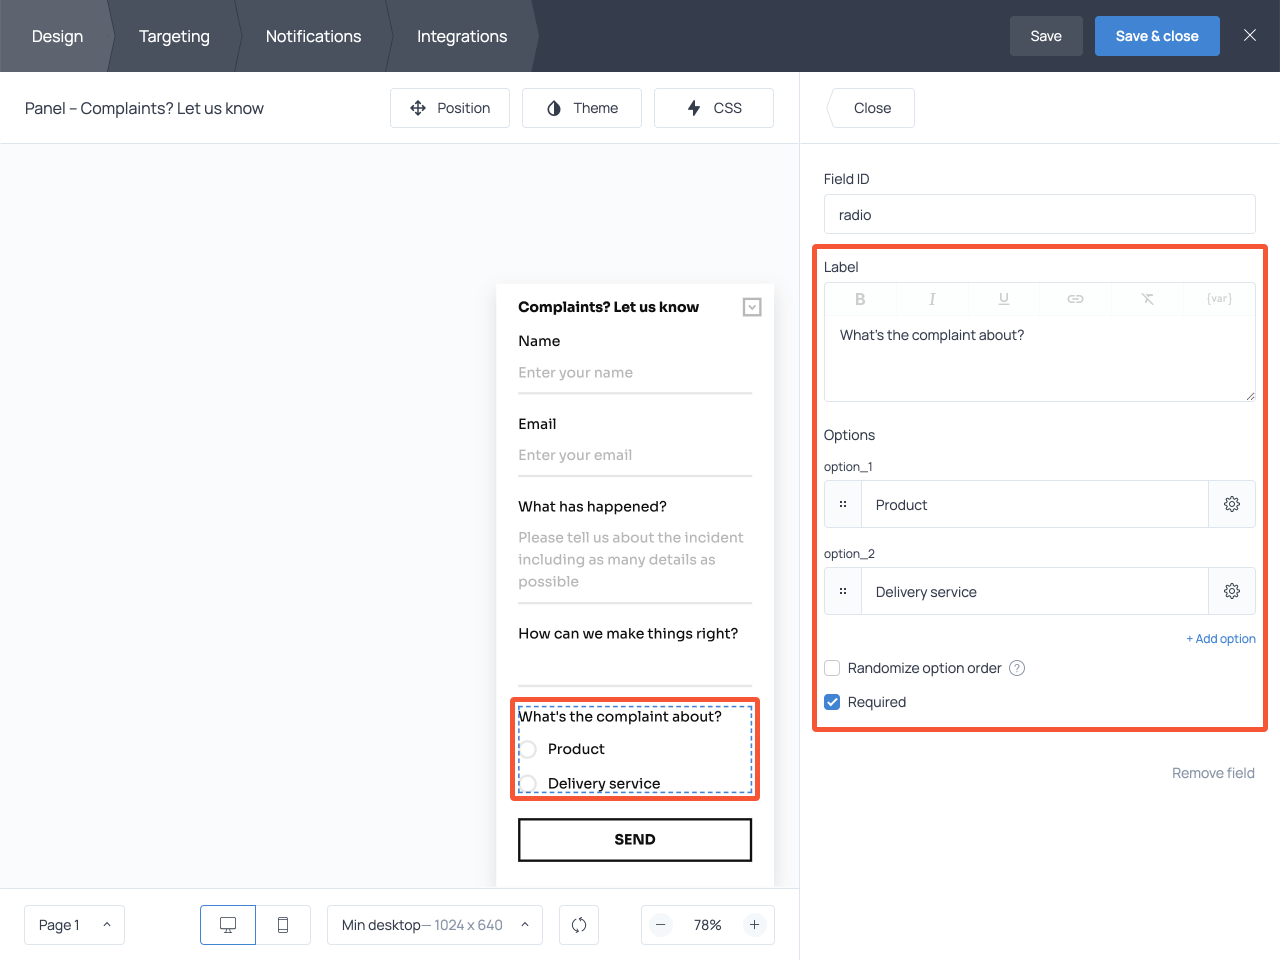 How to add custom fields to a complaint form